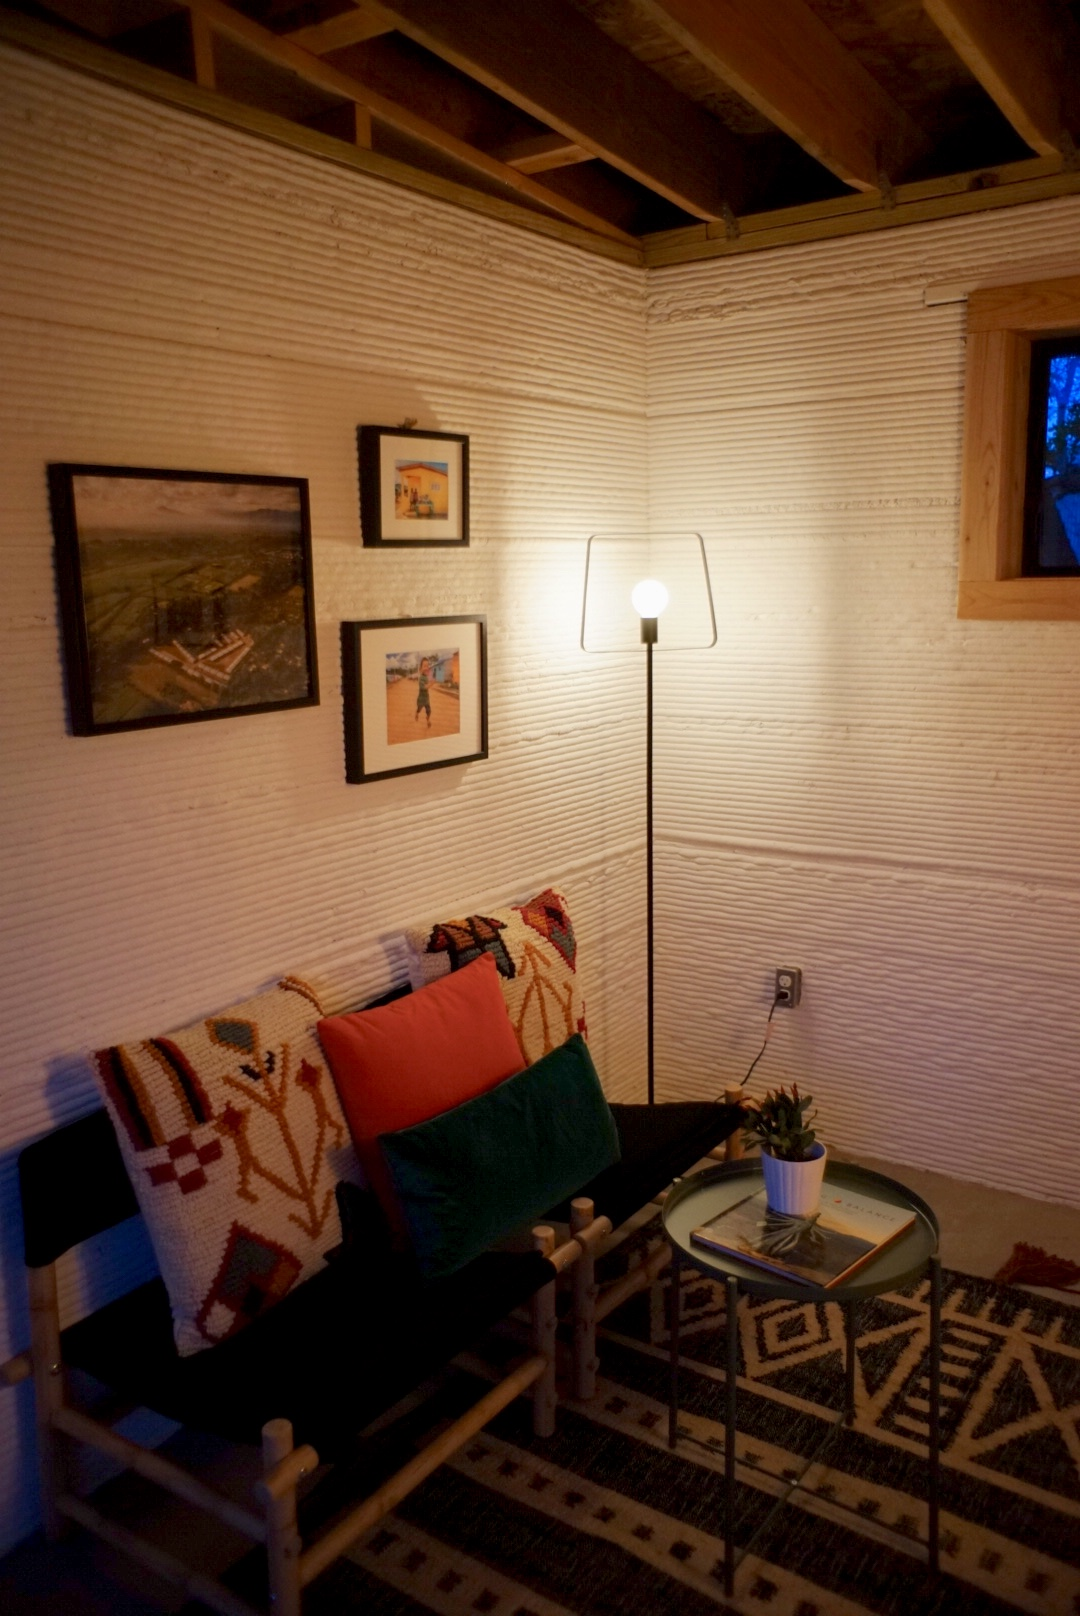 Etonnant Inside The 3D Printed Home. Photo: ICON